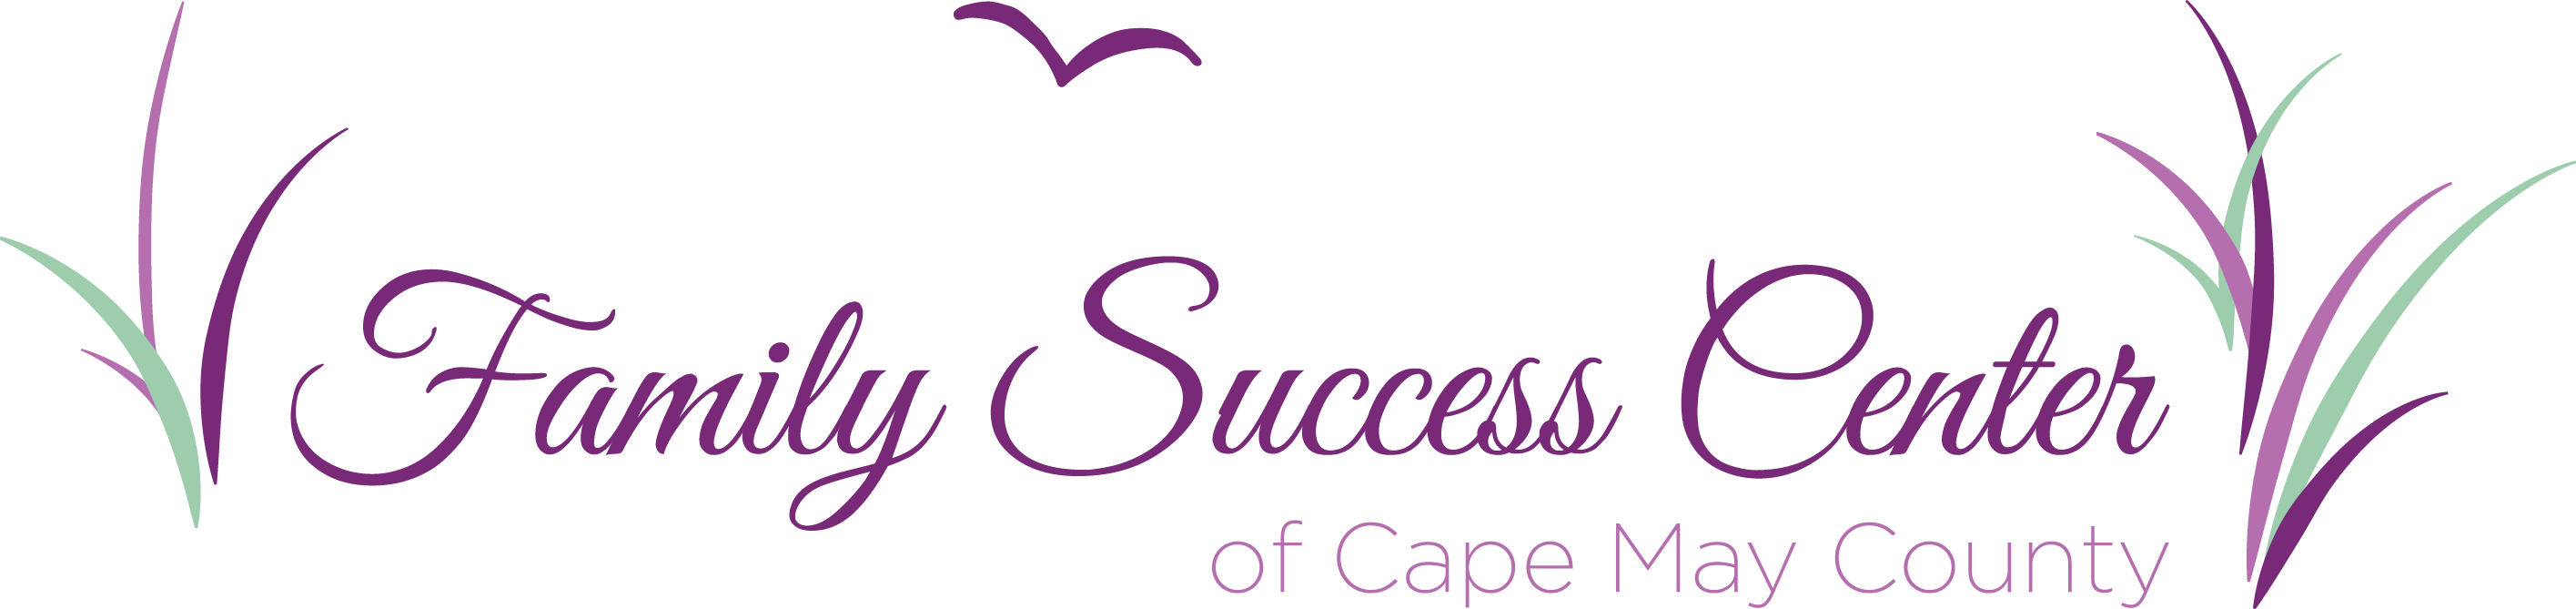 Family Success Center Logo Cape May County NJ New Jersey